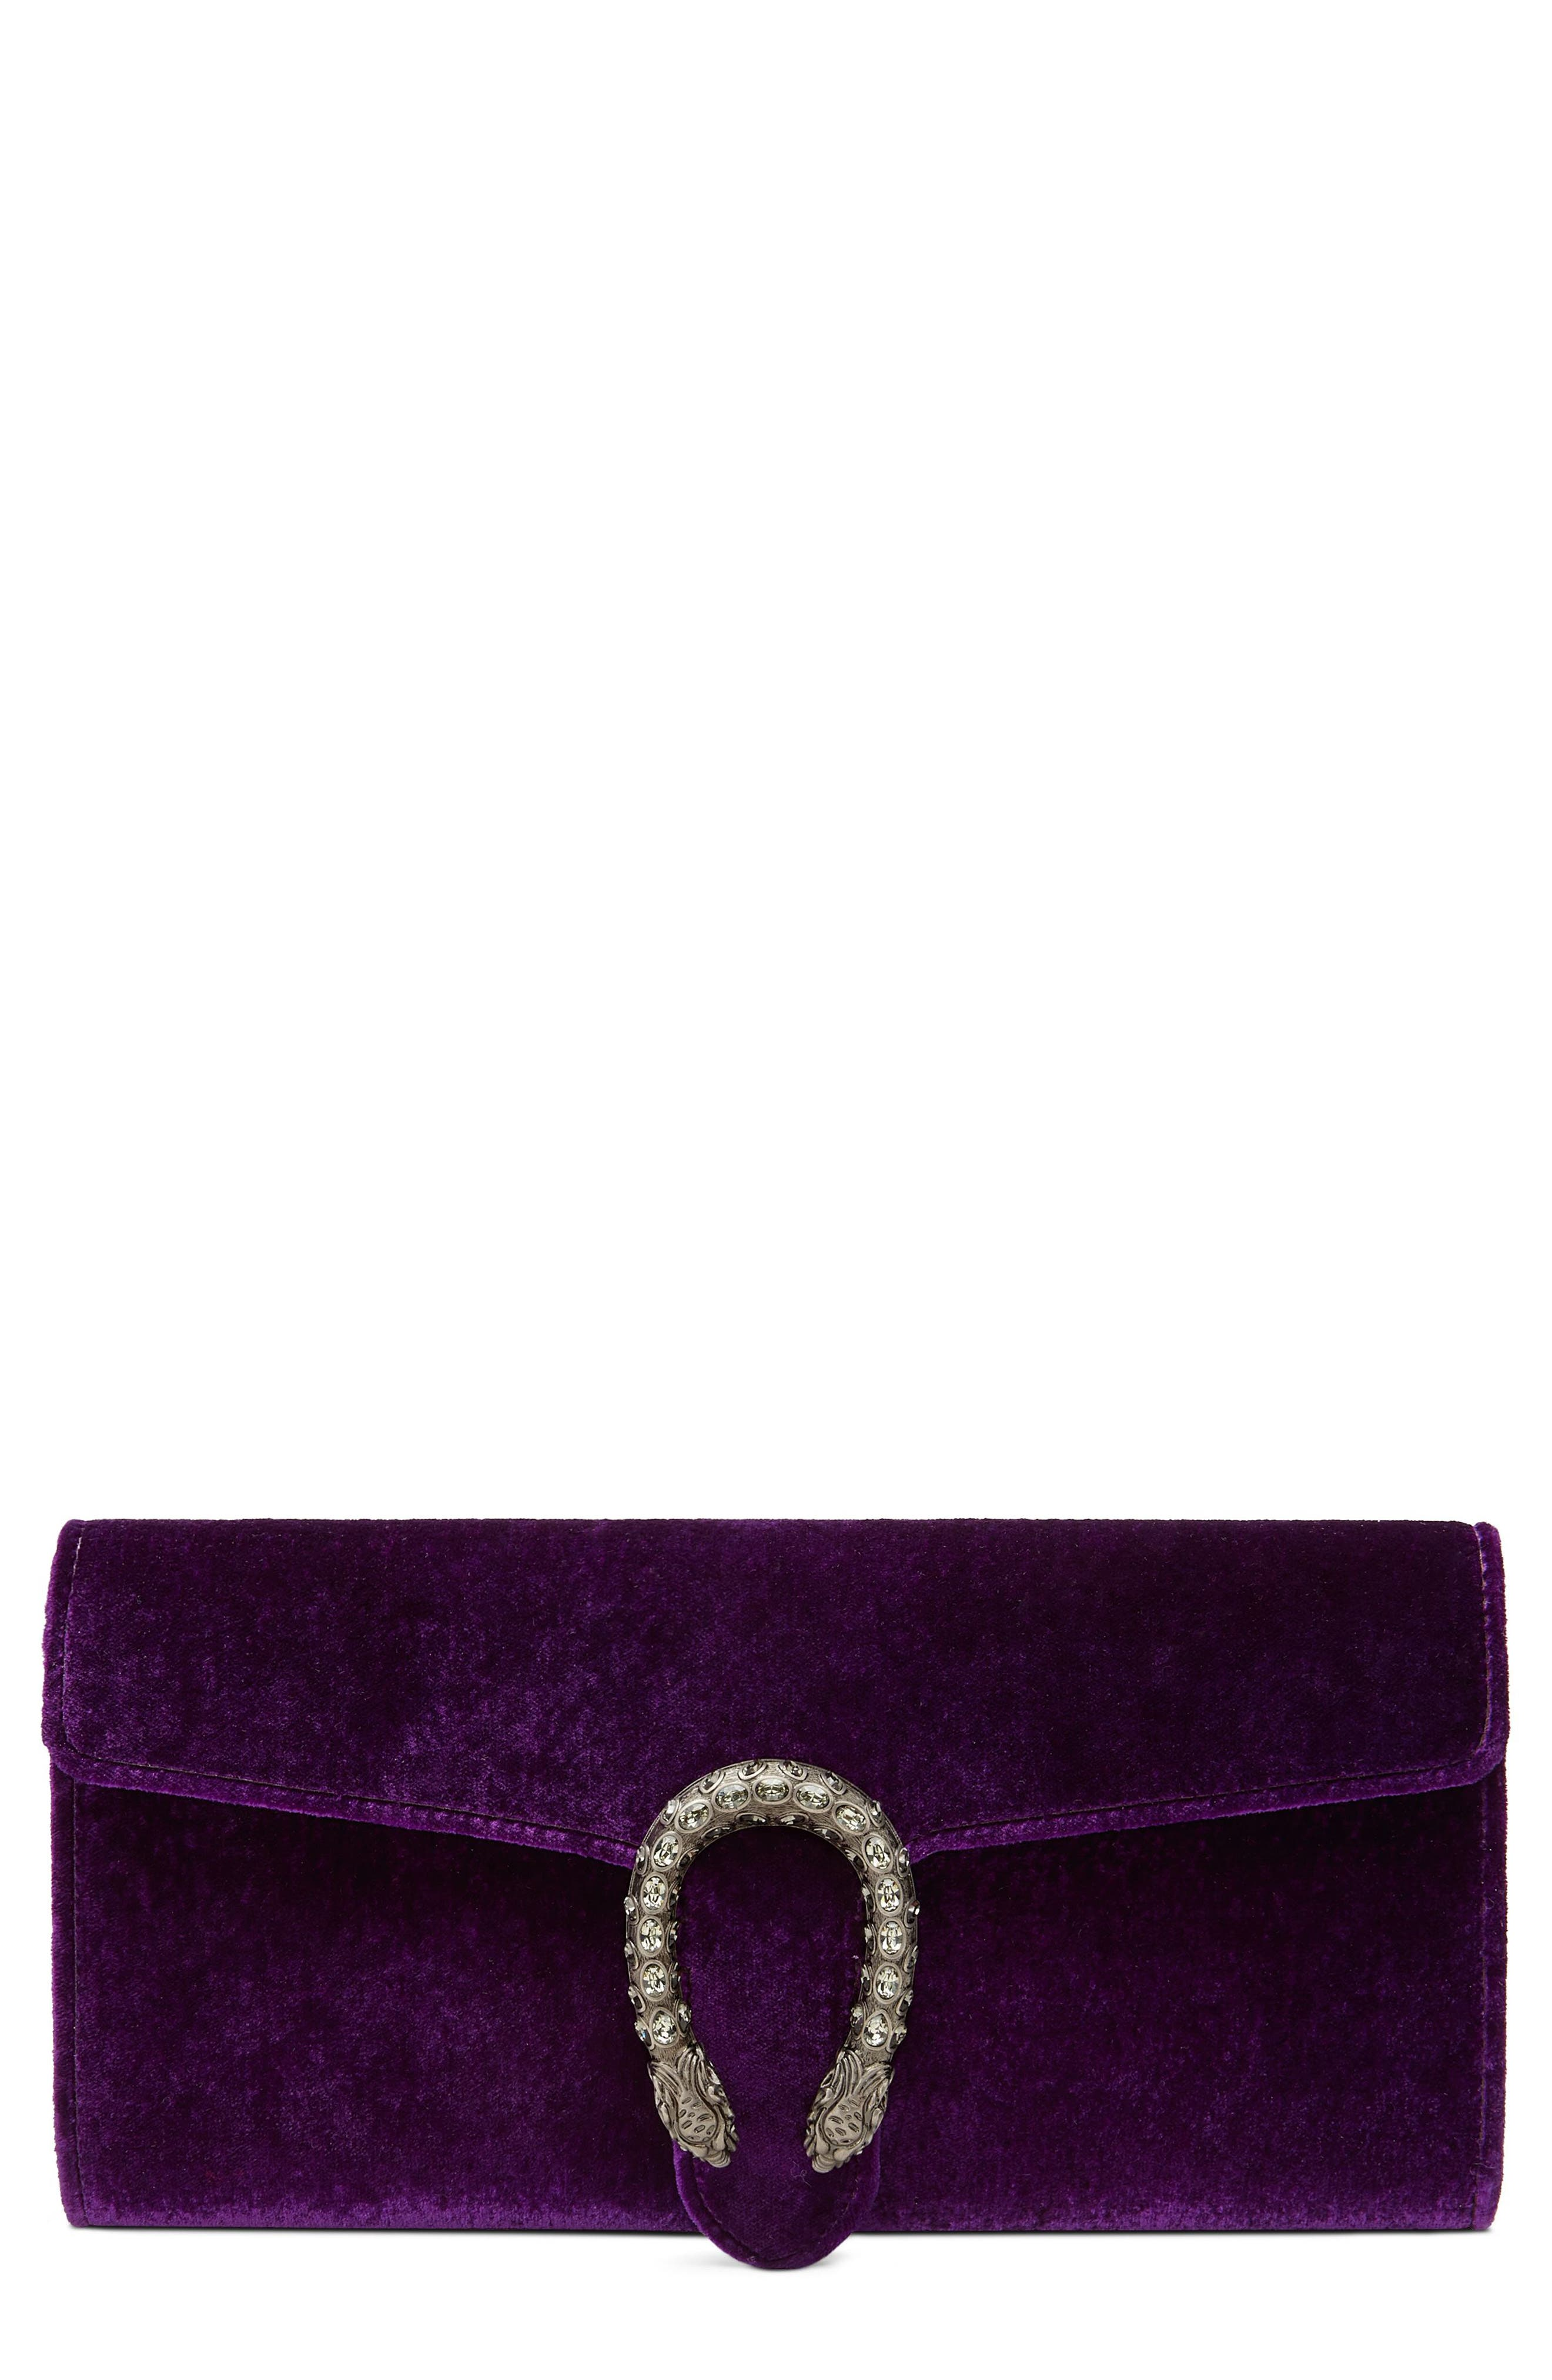 Dionysus Velvet Clutch,                         Main,                         color, VIOLA/ BLACK DIAMOND